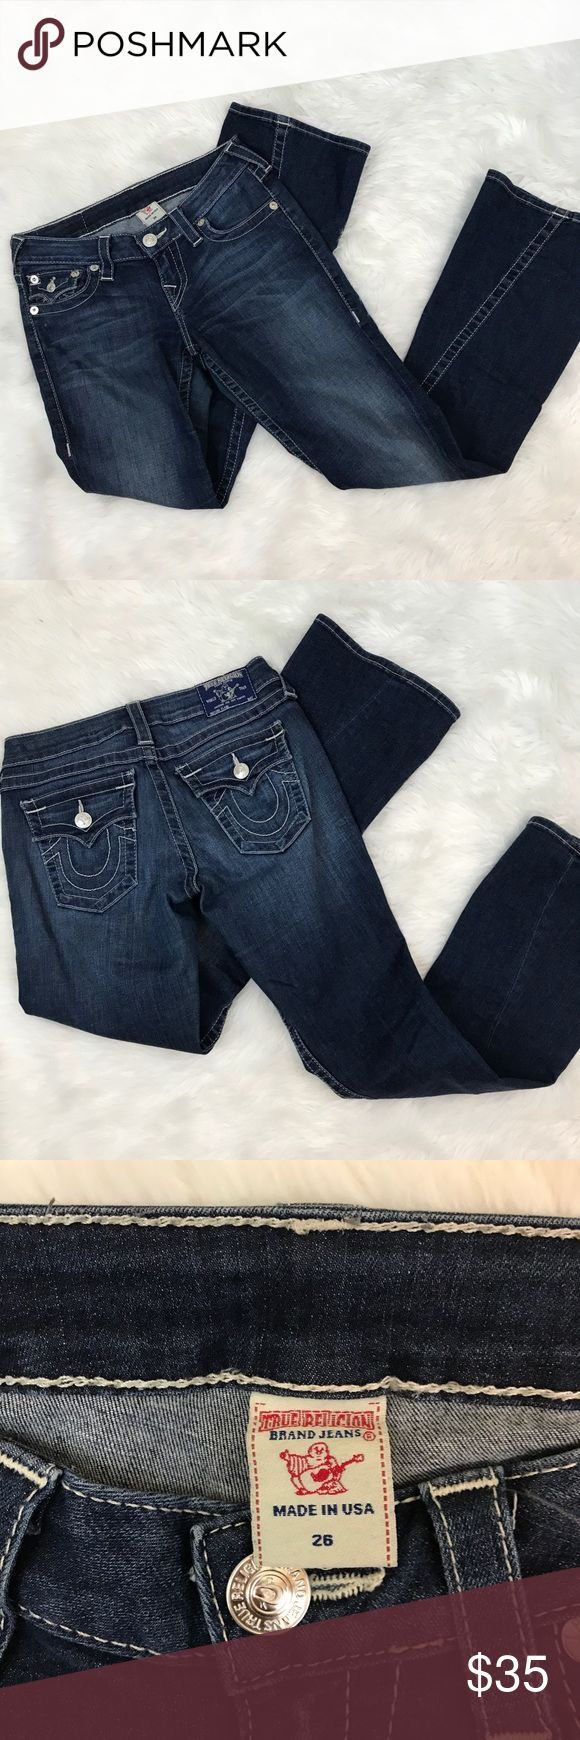 True Religion women's petite flare jeans size 26 Women's true religion jeans petite flare. Size 26. Twisted seam at leg. Zip and one button closure. Horseshoe stitching at the button flap and coin pockets. Machine wash cold. 89% cotton. 8% polyester. 3% elastane. Excellent used condition! No rips, tears or stains! No fraying at the bottom of the legs. Approximate measurements with the jeans laying flat: waist: 14 inches. Inseam: 30.5 inches. Front rise: 8 inches. True Religion Jeans Flare…